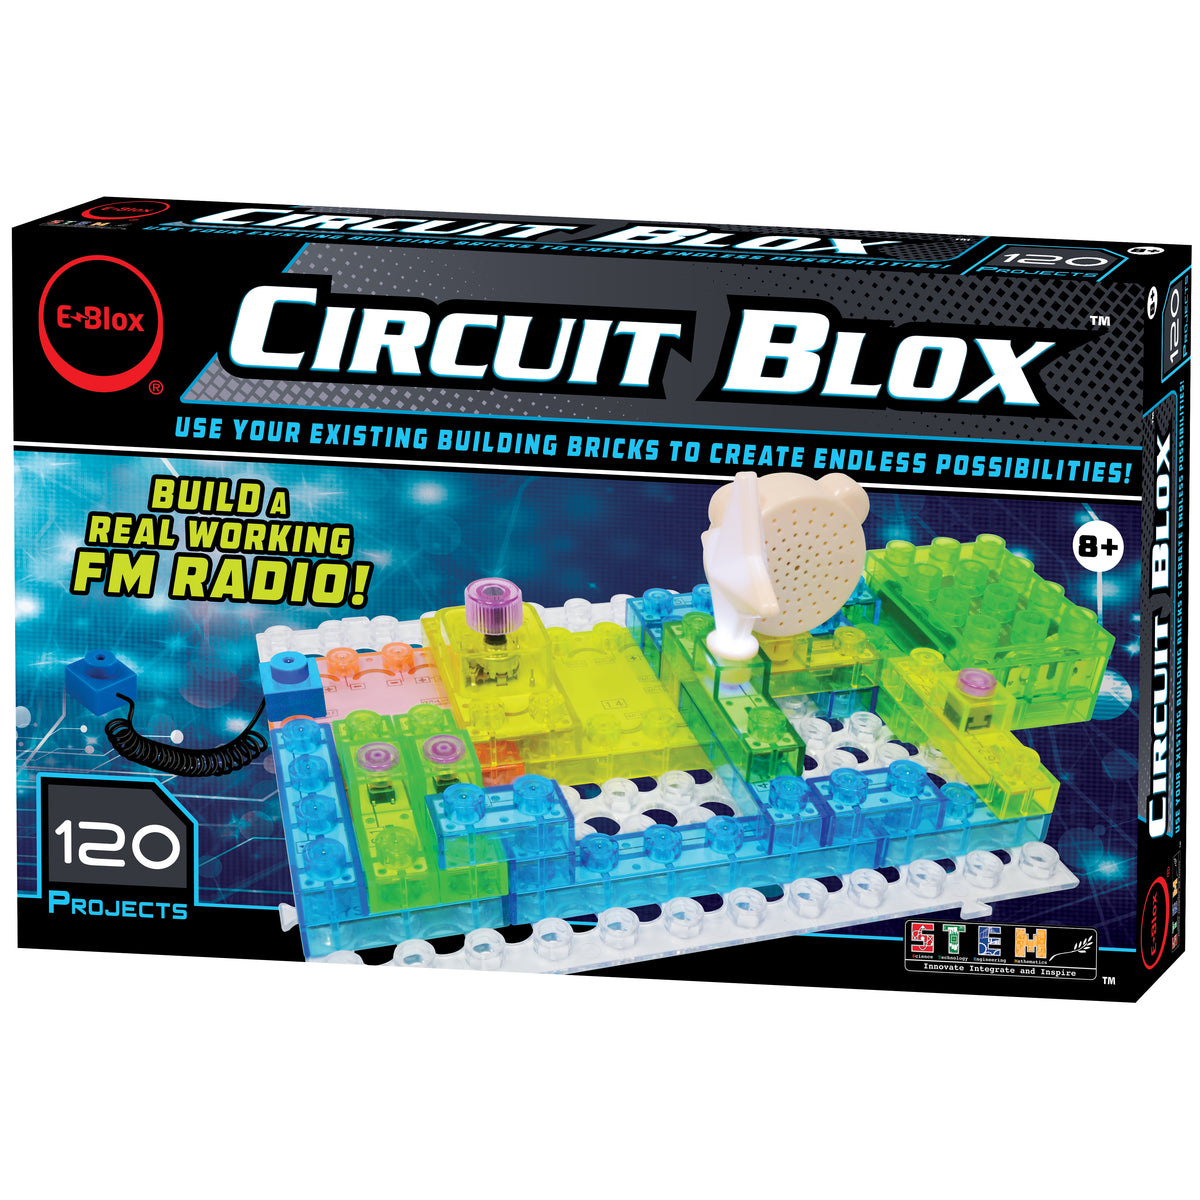 Circuit Blox 120 Projects E-blox